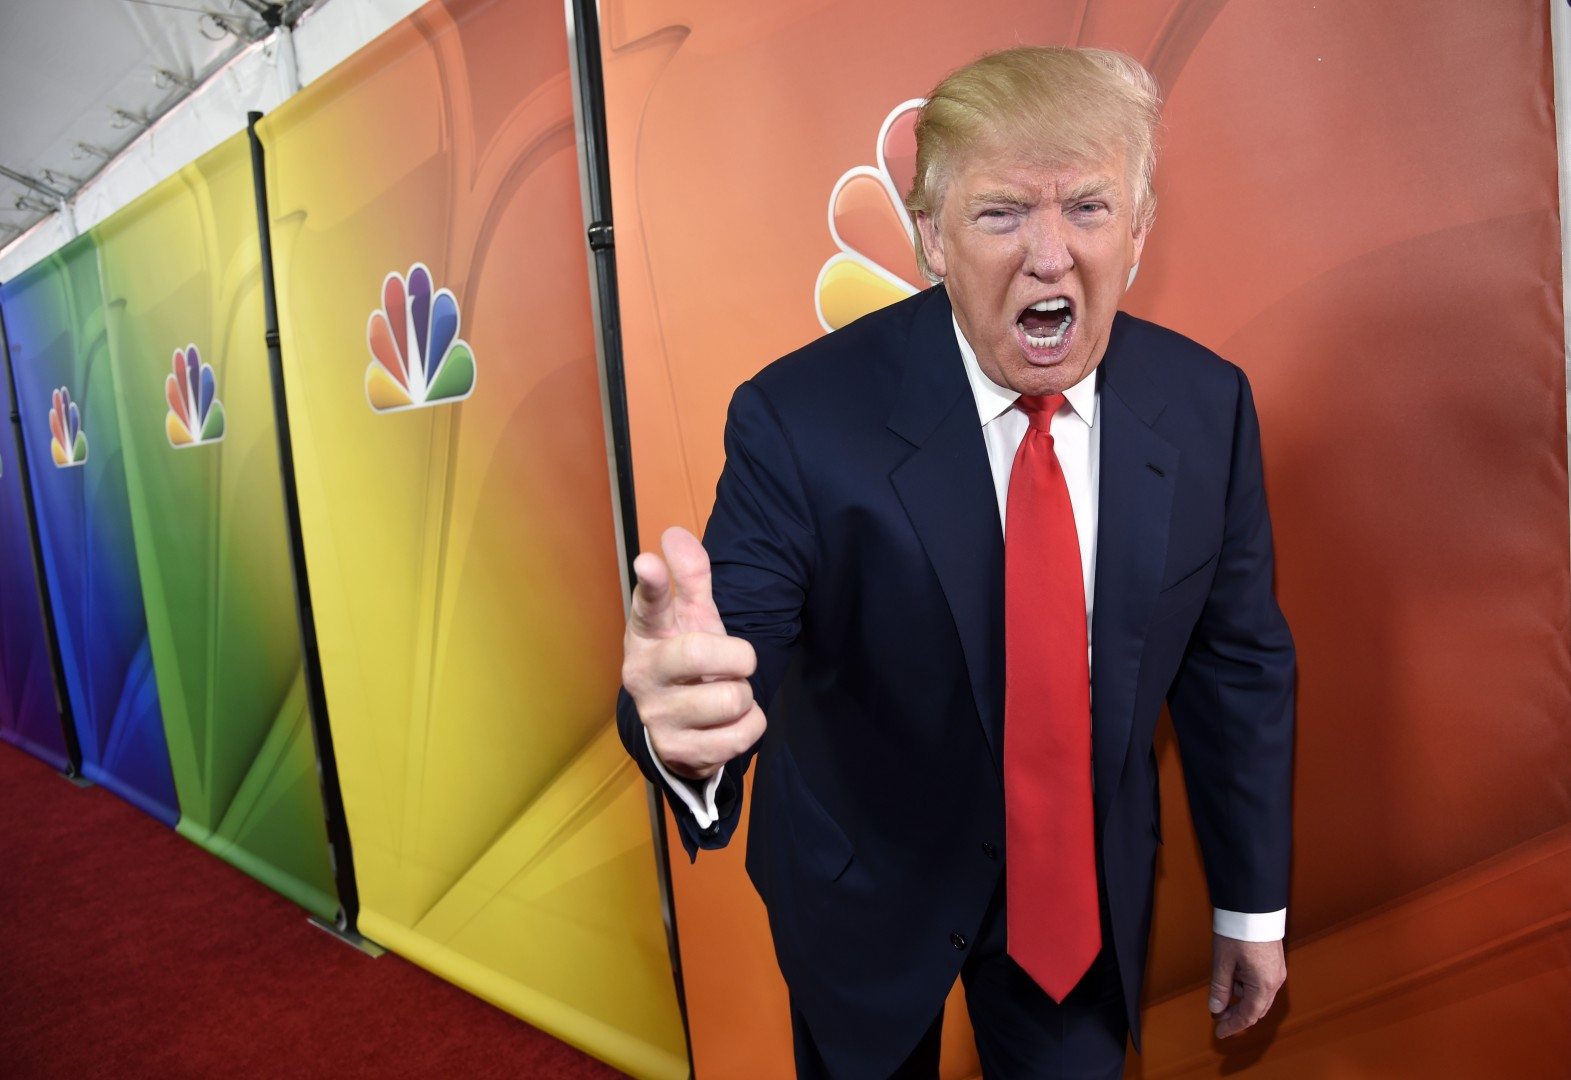 No, YOU'RE fired: NBC dumps Trump over comments on Mexican